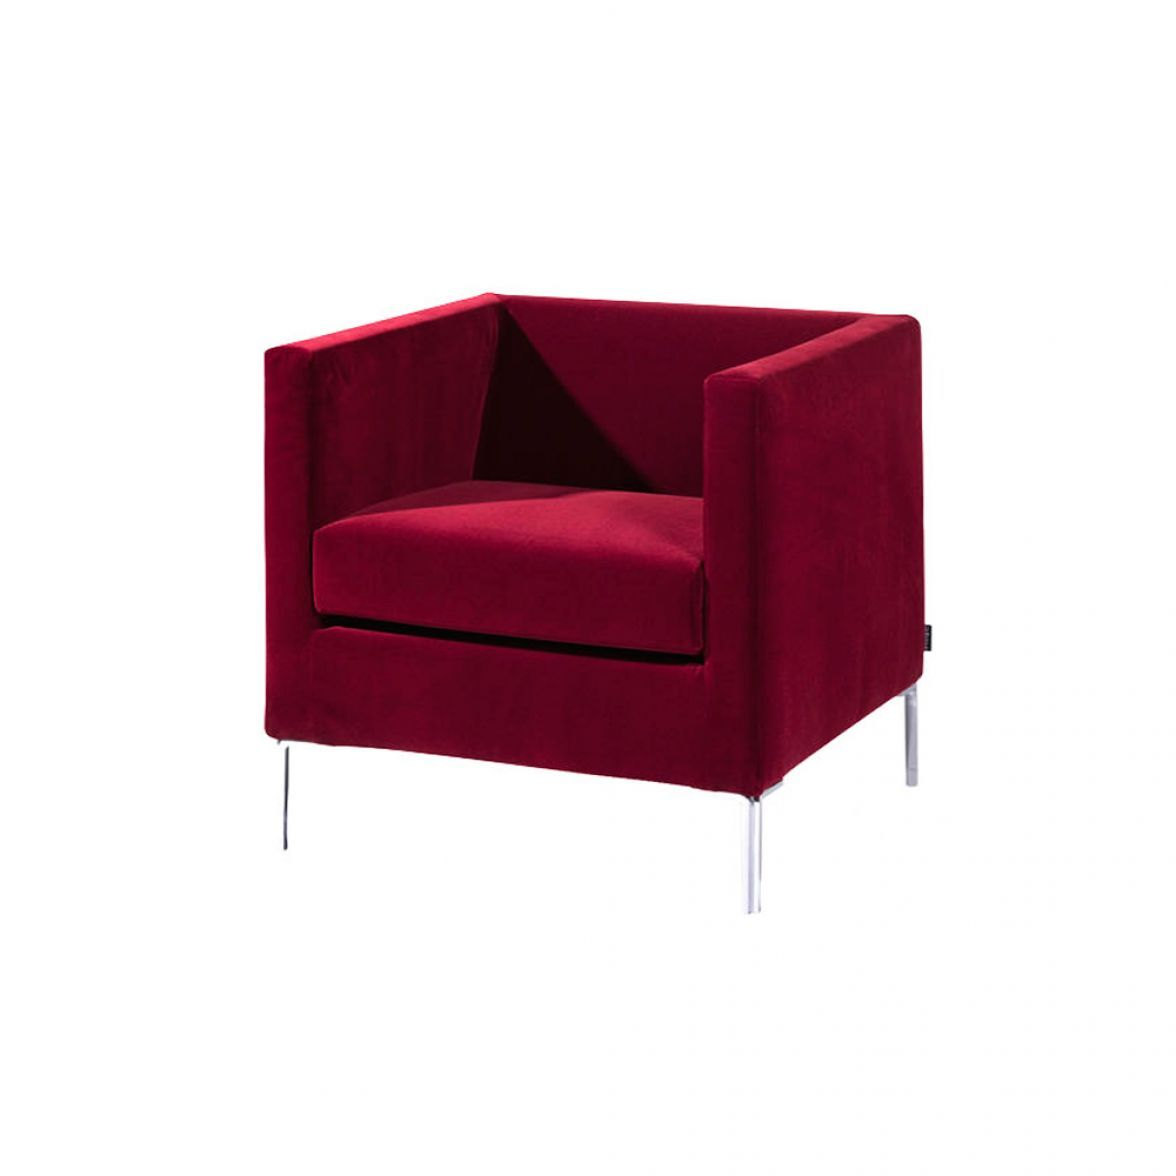 Giglio armchair